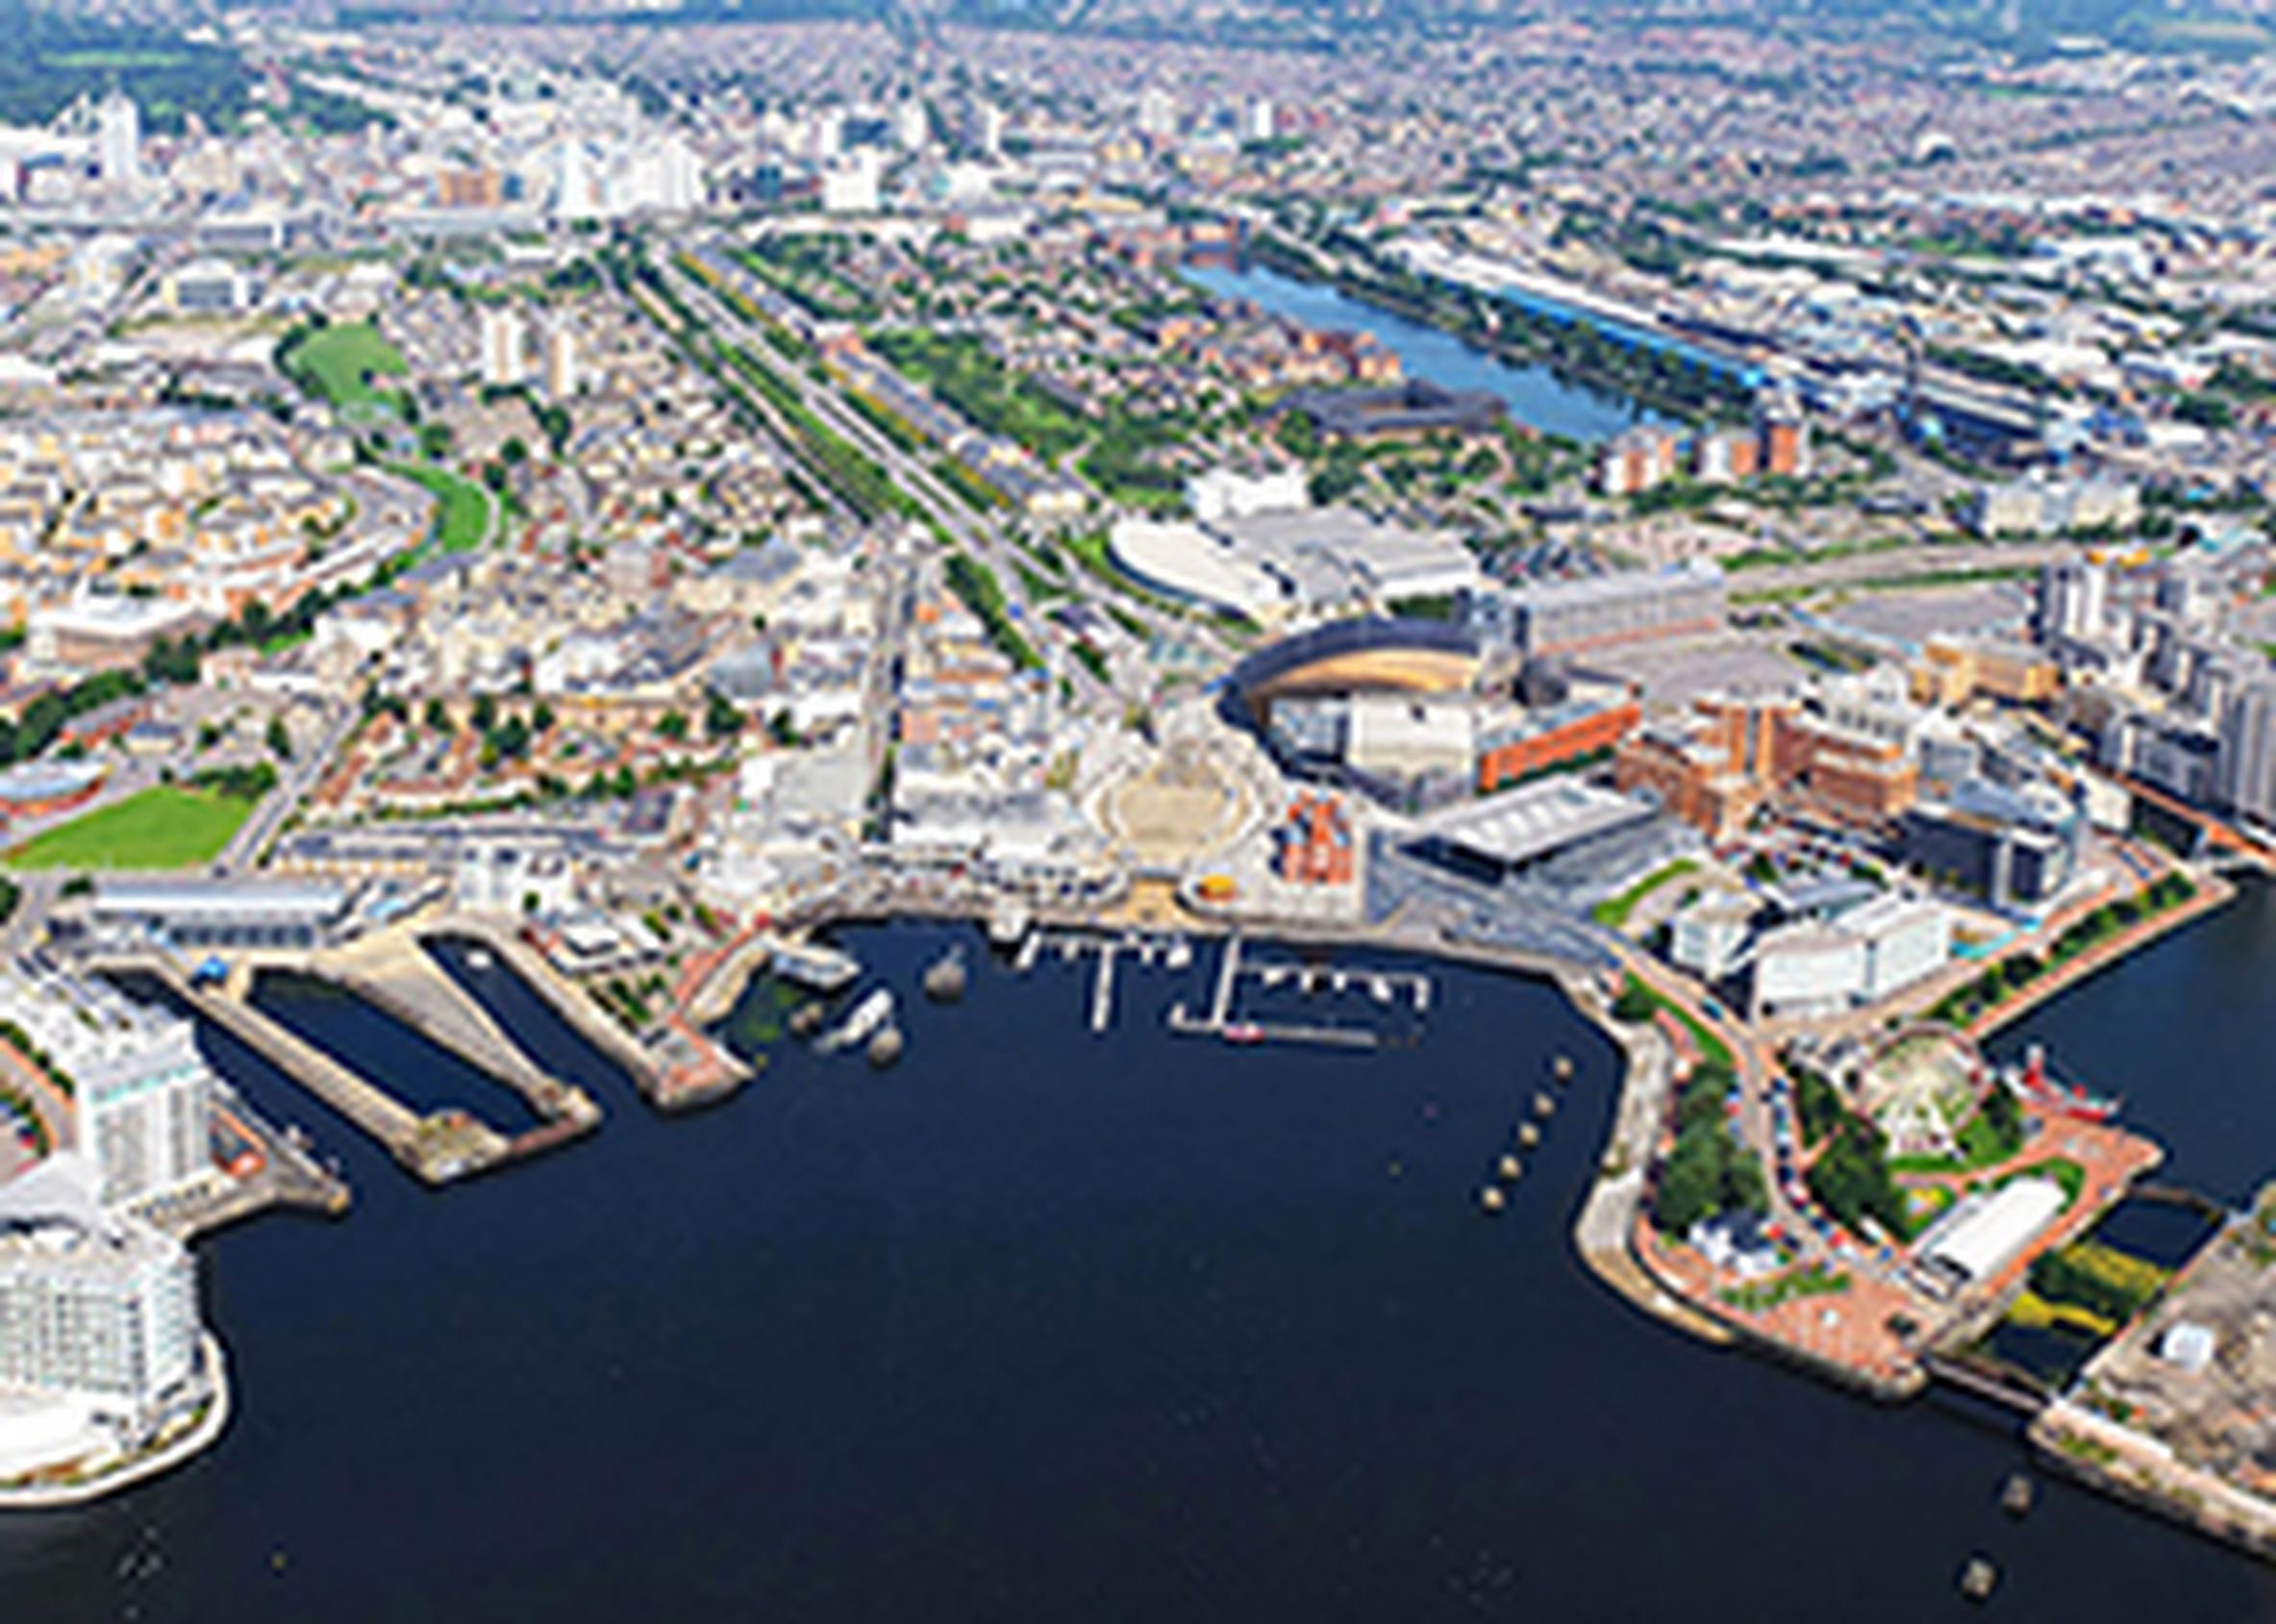 Q-Park moves into Cardiff Bay